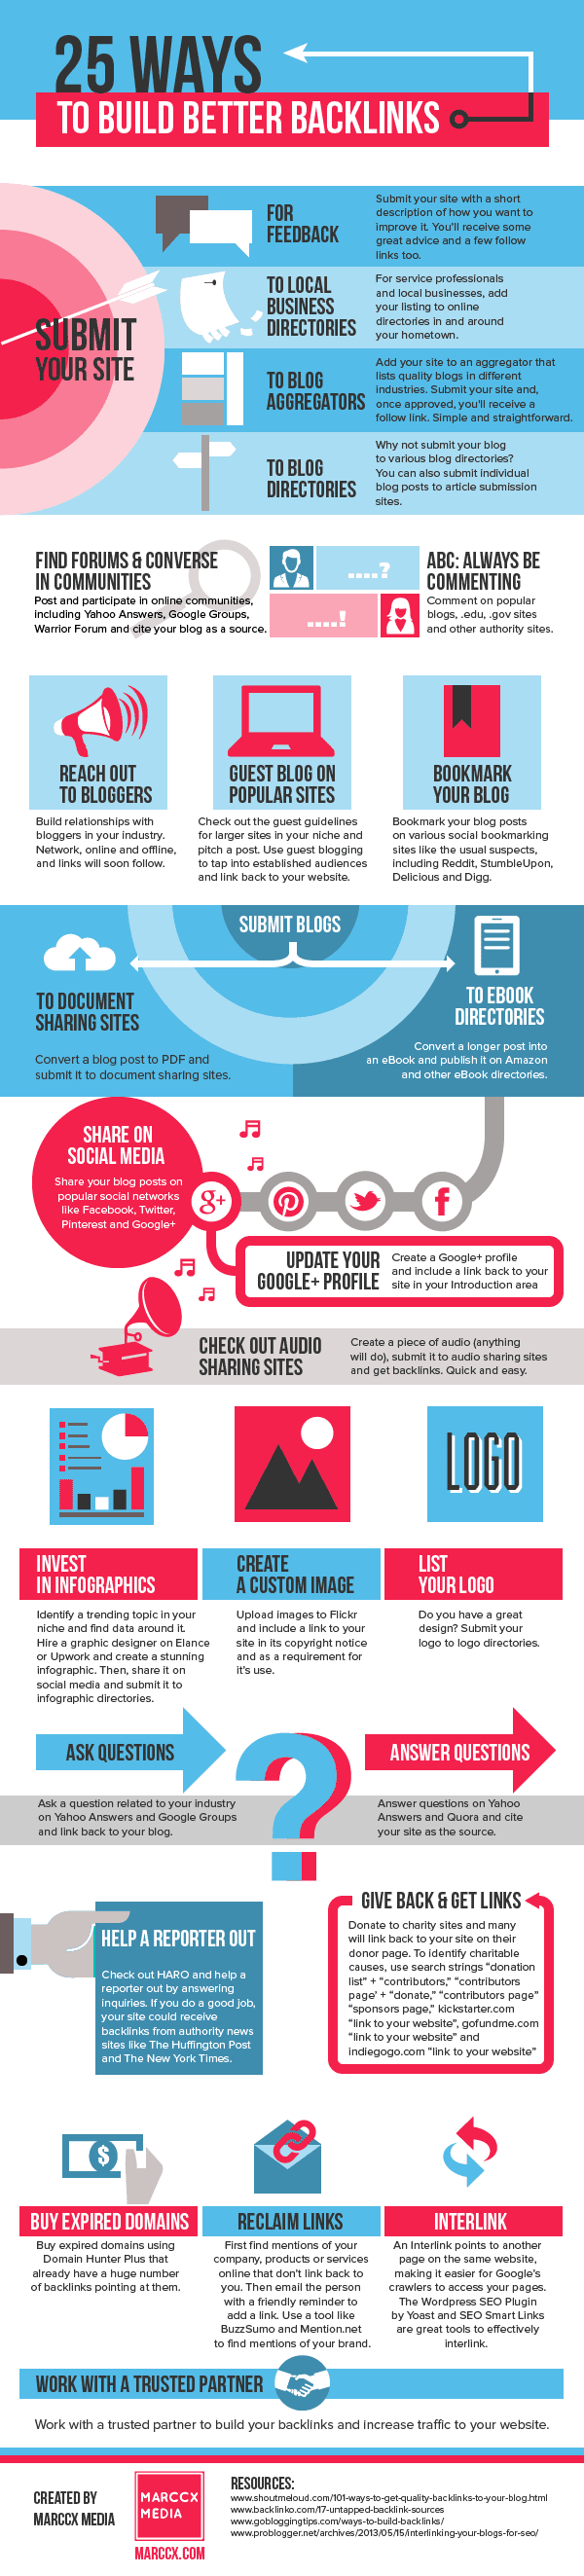 25 Ways to Build Backlinks - #Infographic